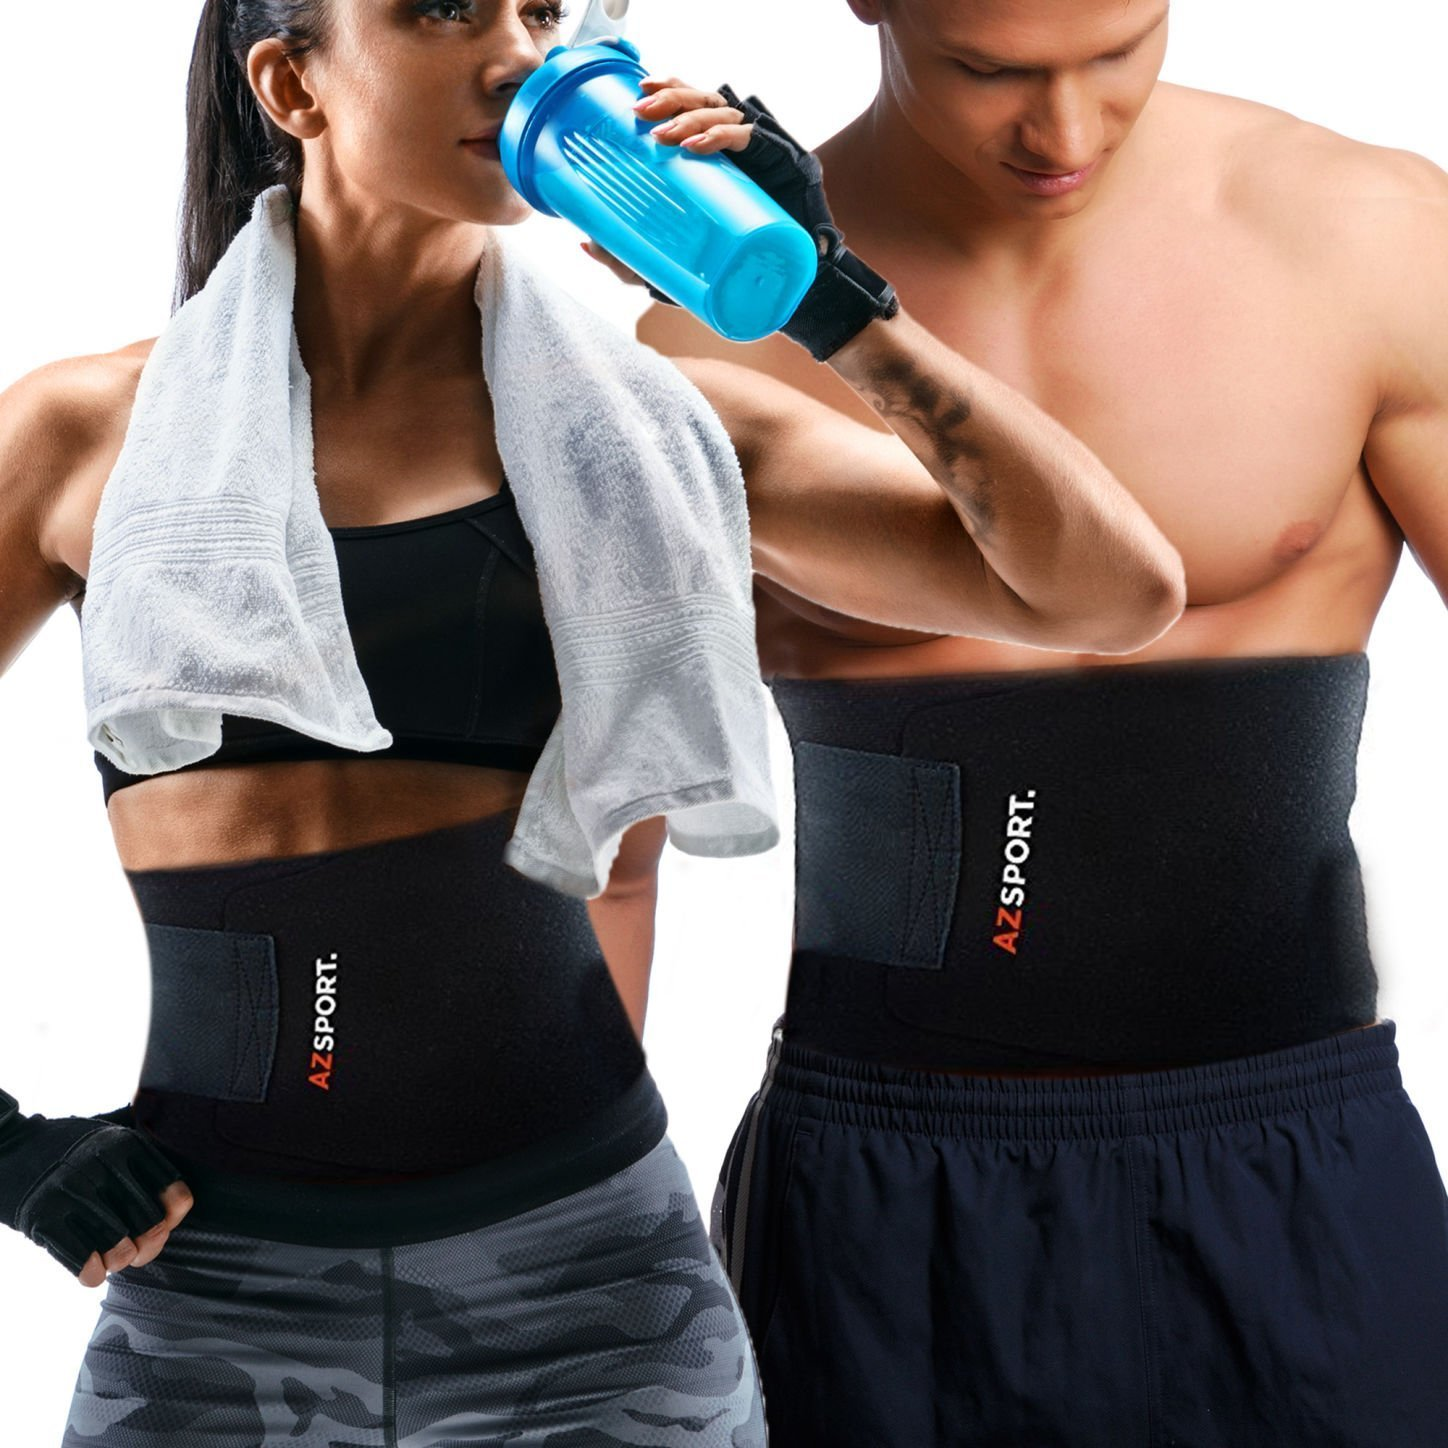 AZSPORT Adjustable Waist Trimmer Ab Sauna Belt